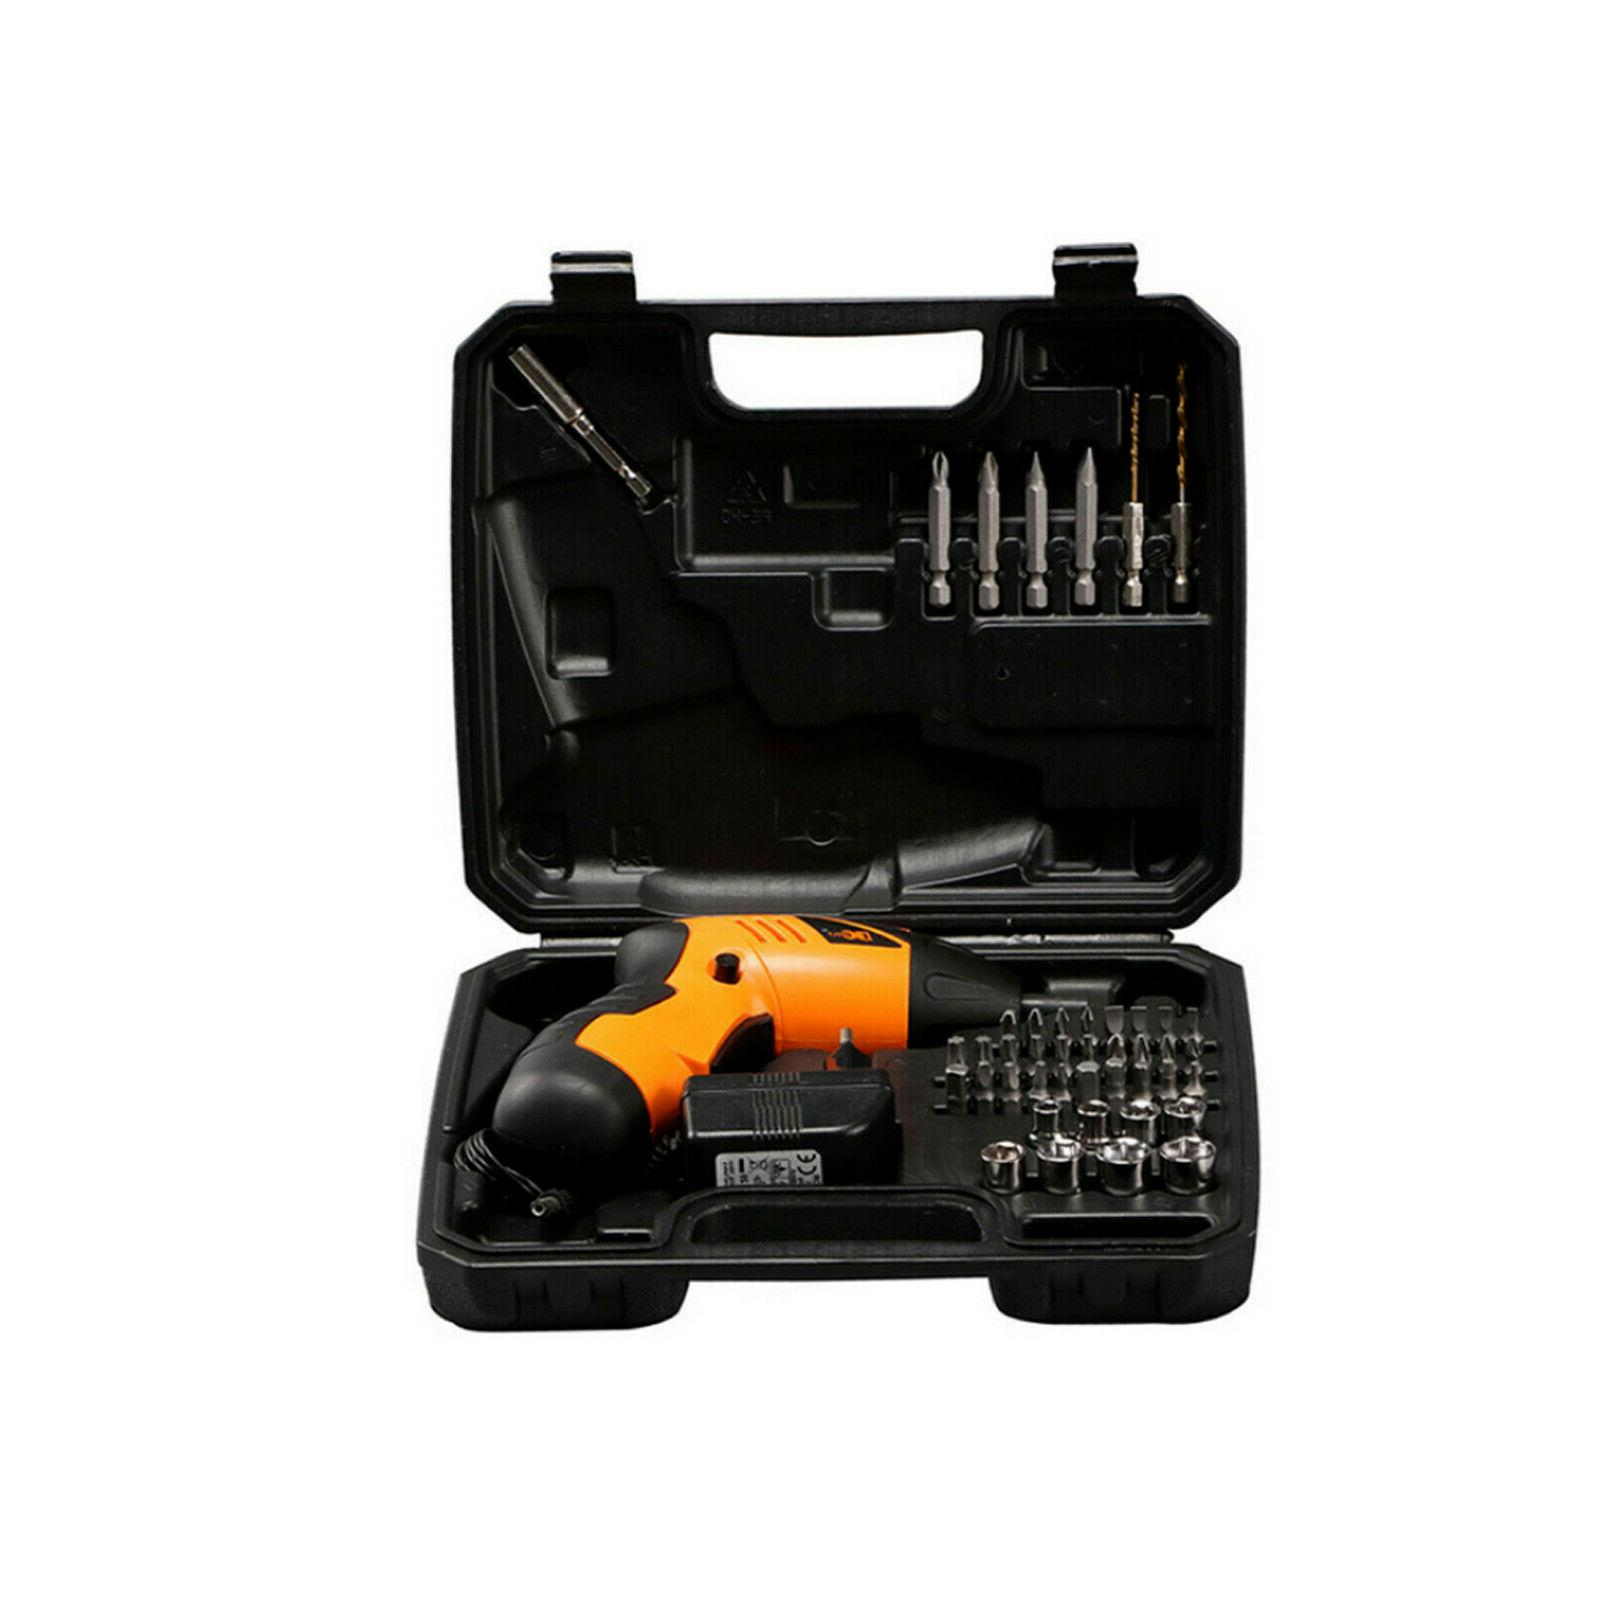 45 Power Tool Cordless Electric Screwdriver Drill Kit Wireless